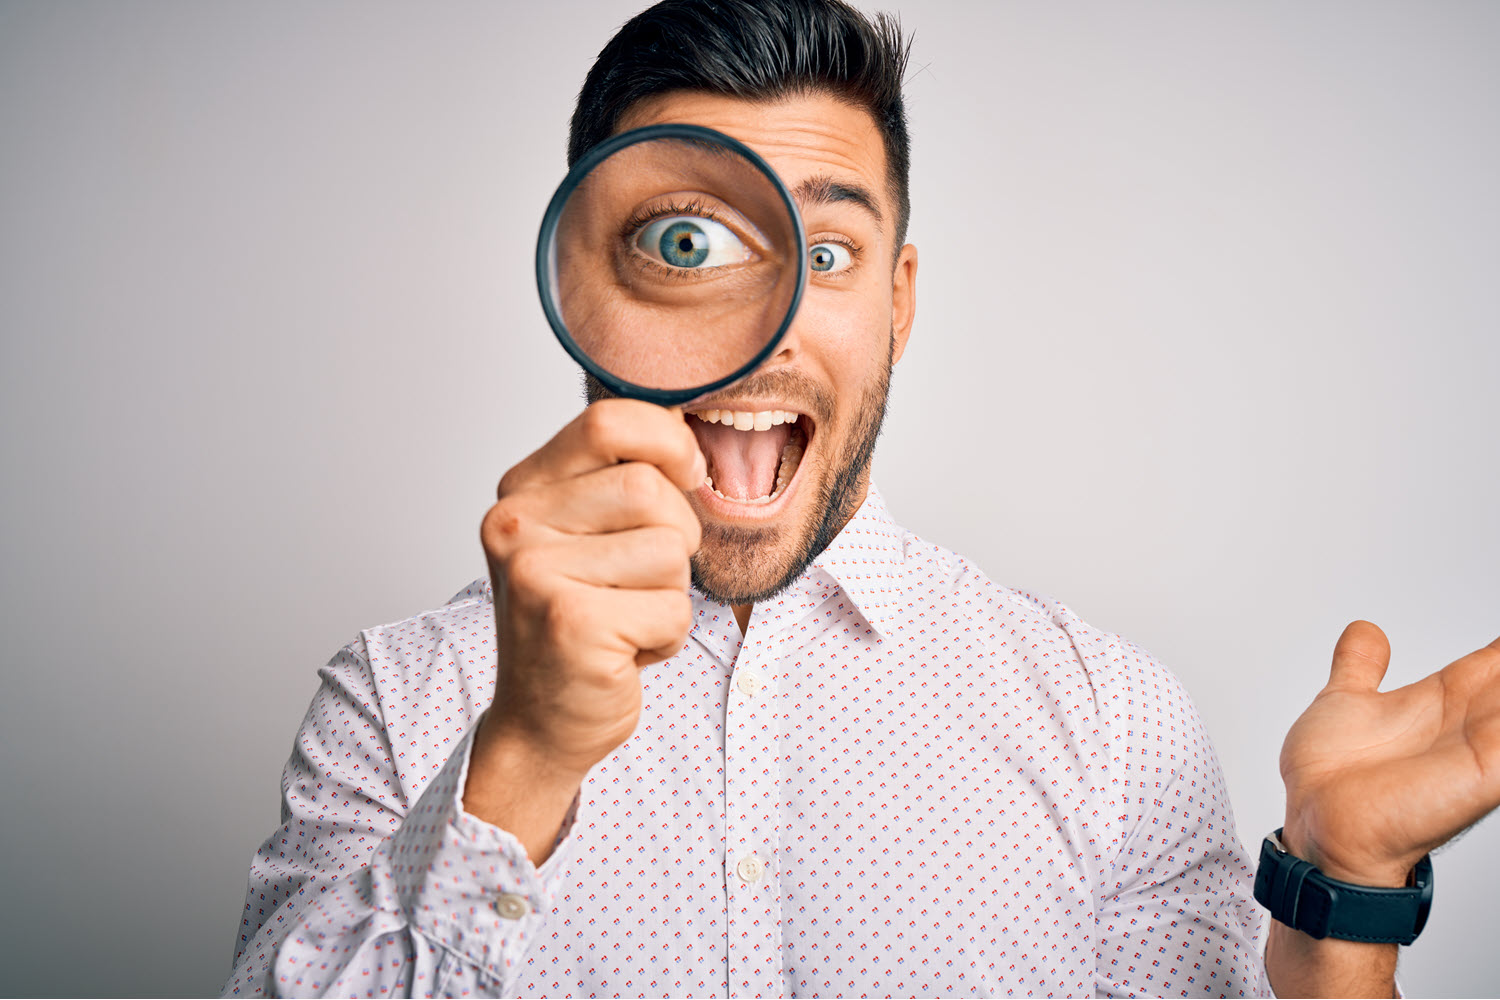 Singing man holding magnifying glass up to eye to analyze voices